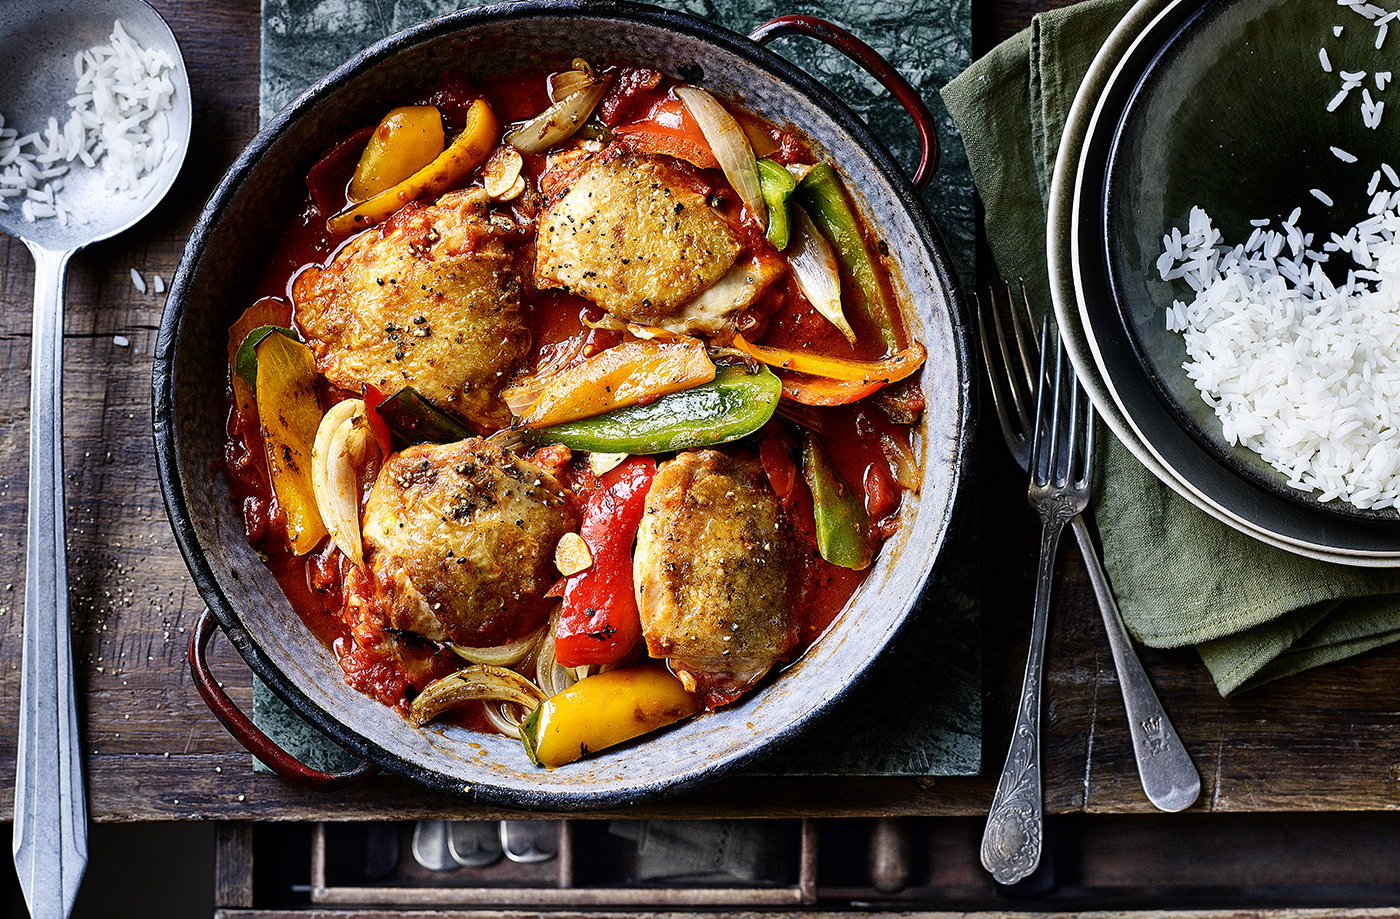 Spanish-inspired chicken and peppers one-pot recipe